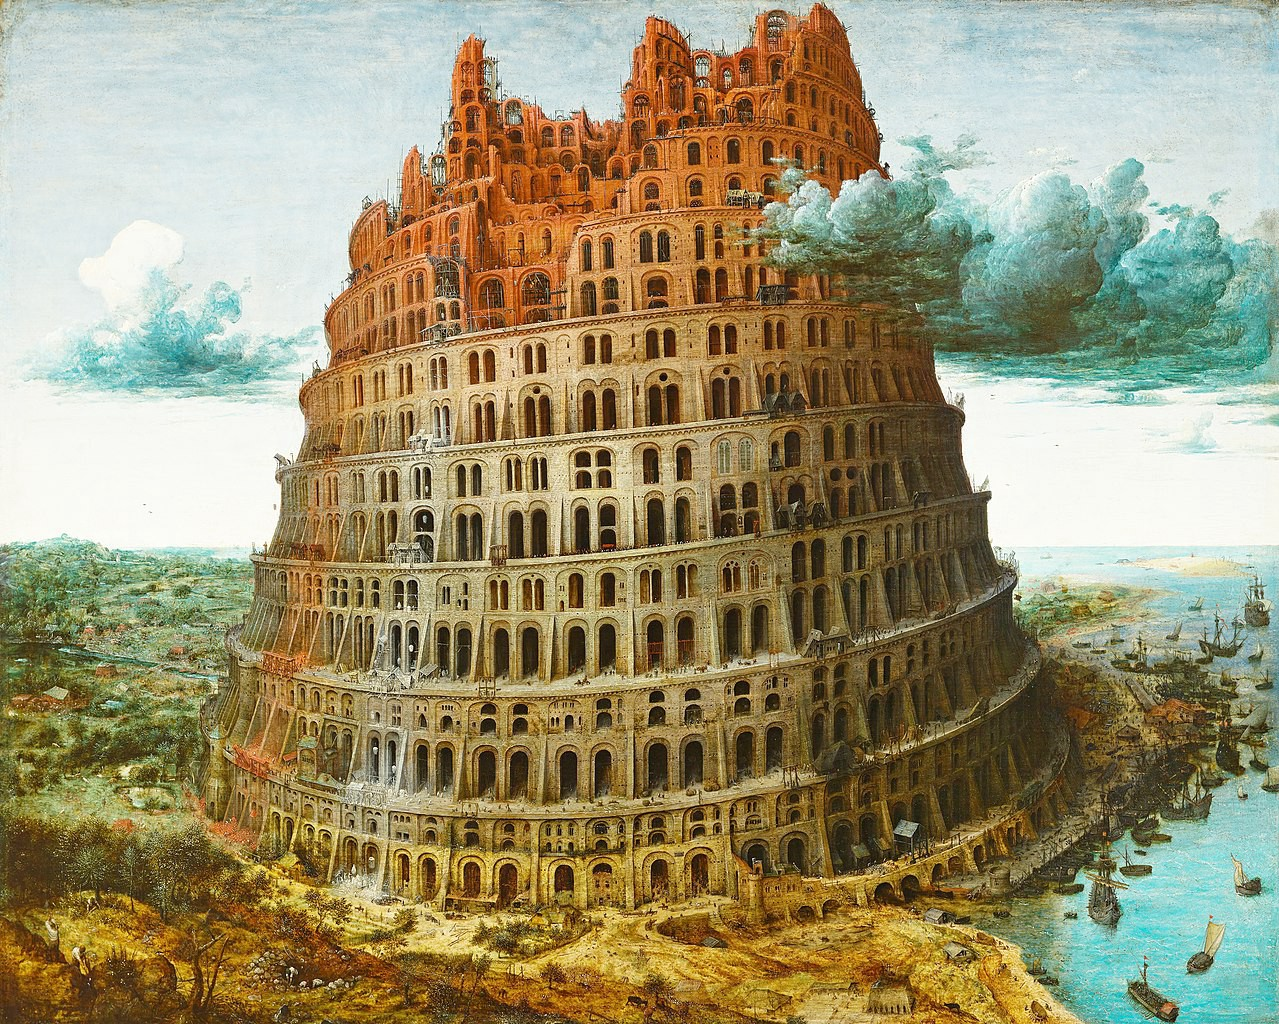 The Tower of Babel reaching into the clouds